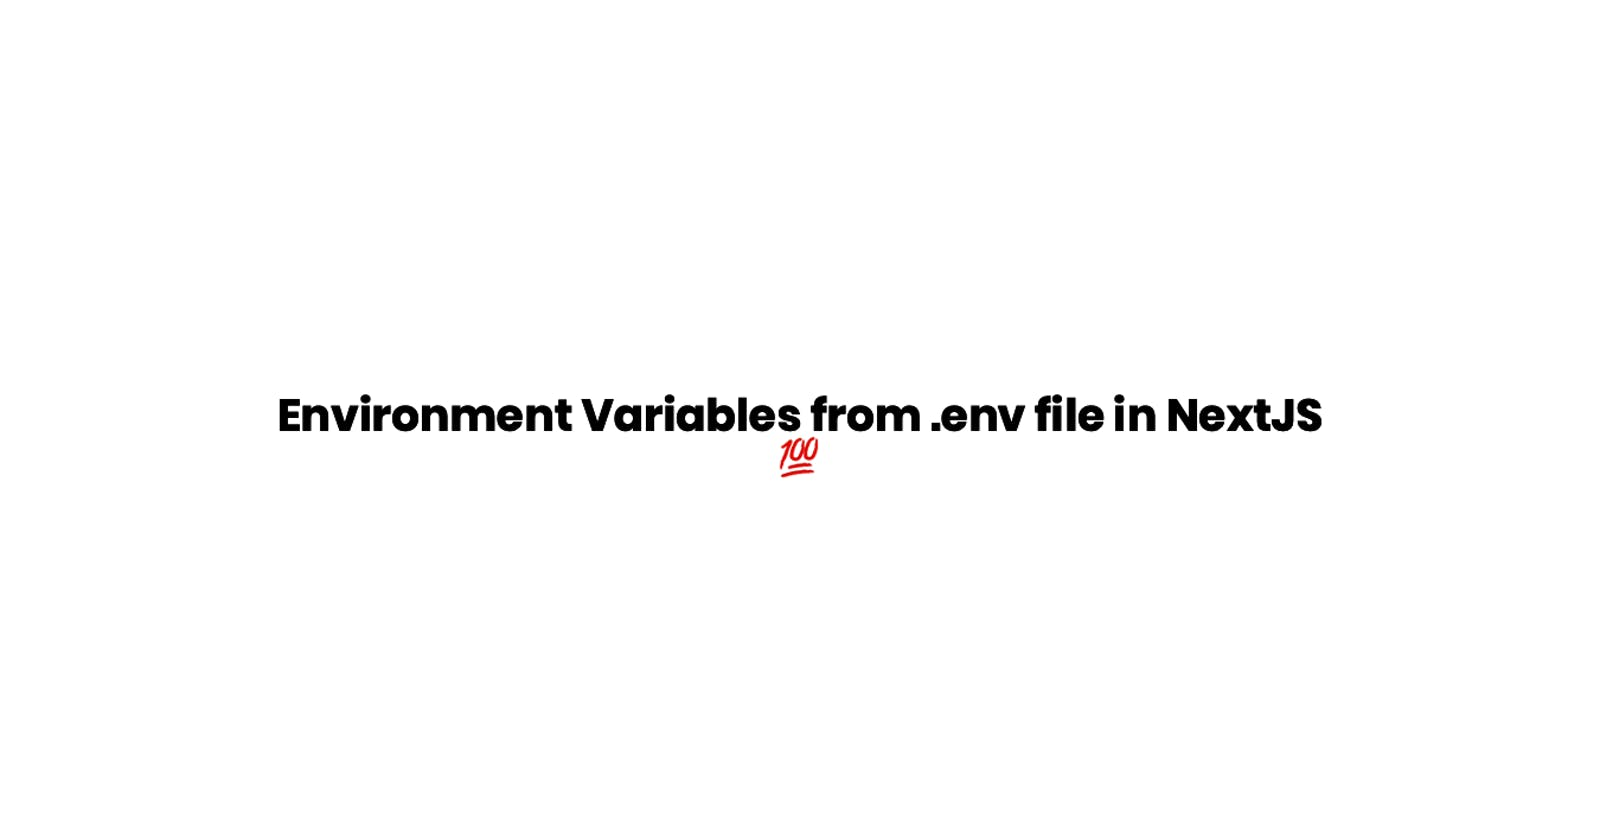 Environment Variables from .env file in NextJS